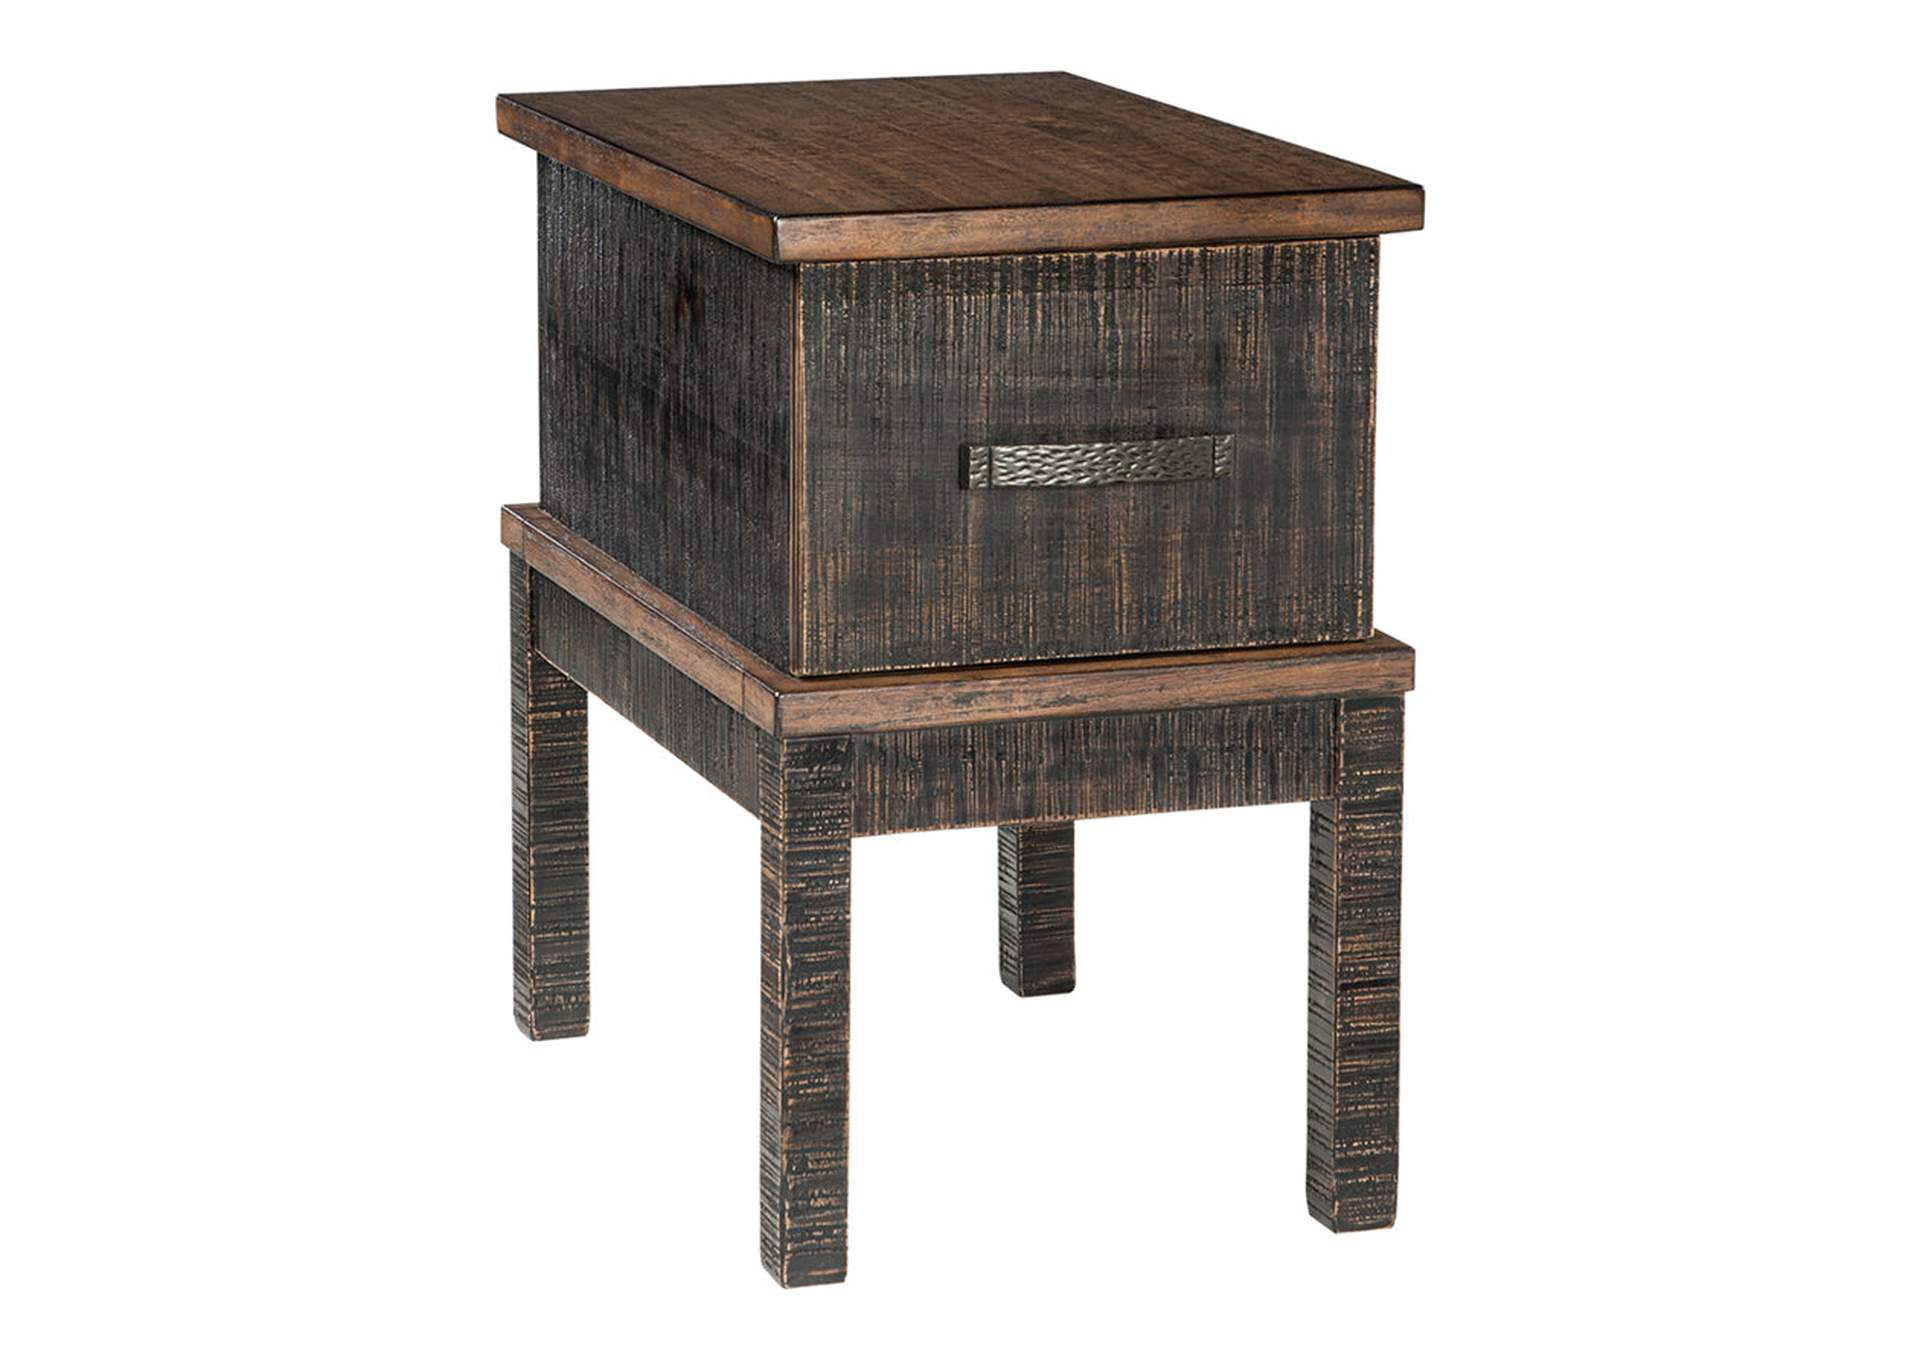 Stanah Chairside End Table with USB Ports and Outlets